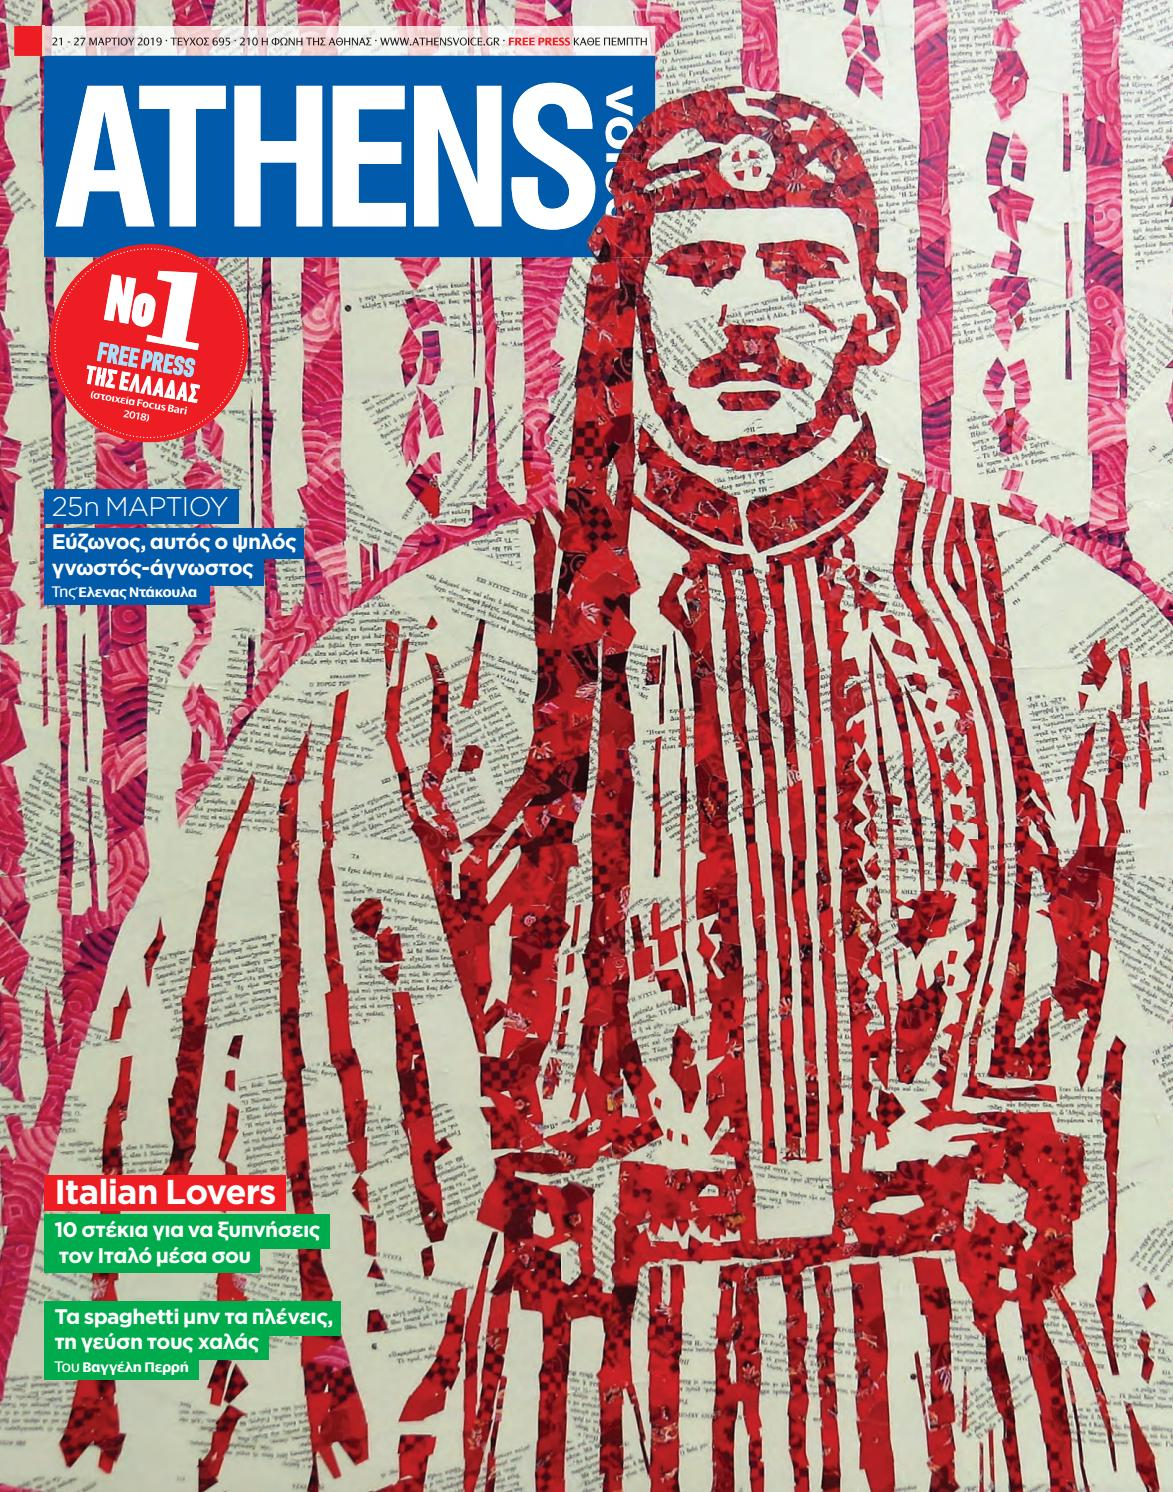 71ff91f310e Athens Voice 695 by Athens Voice - issuu